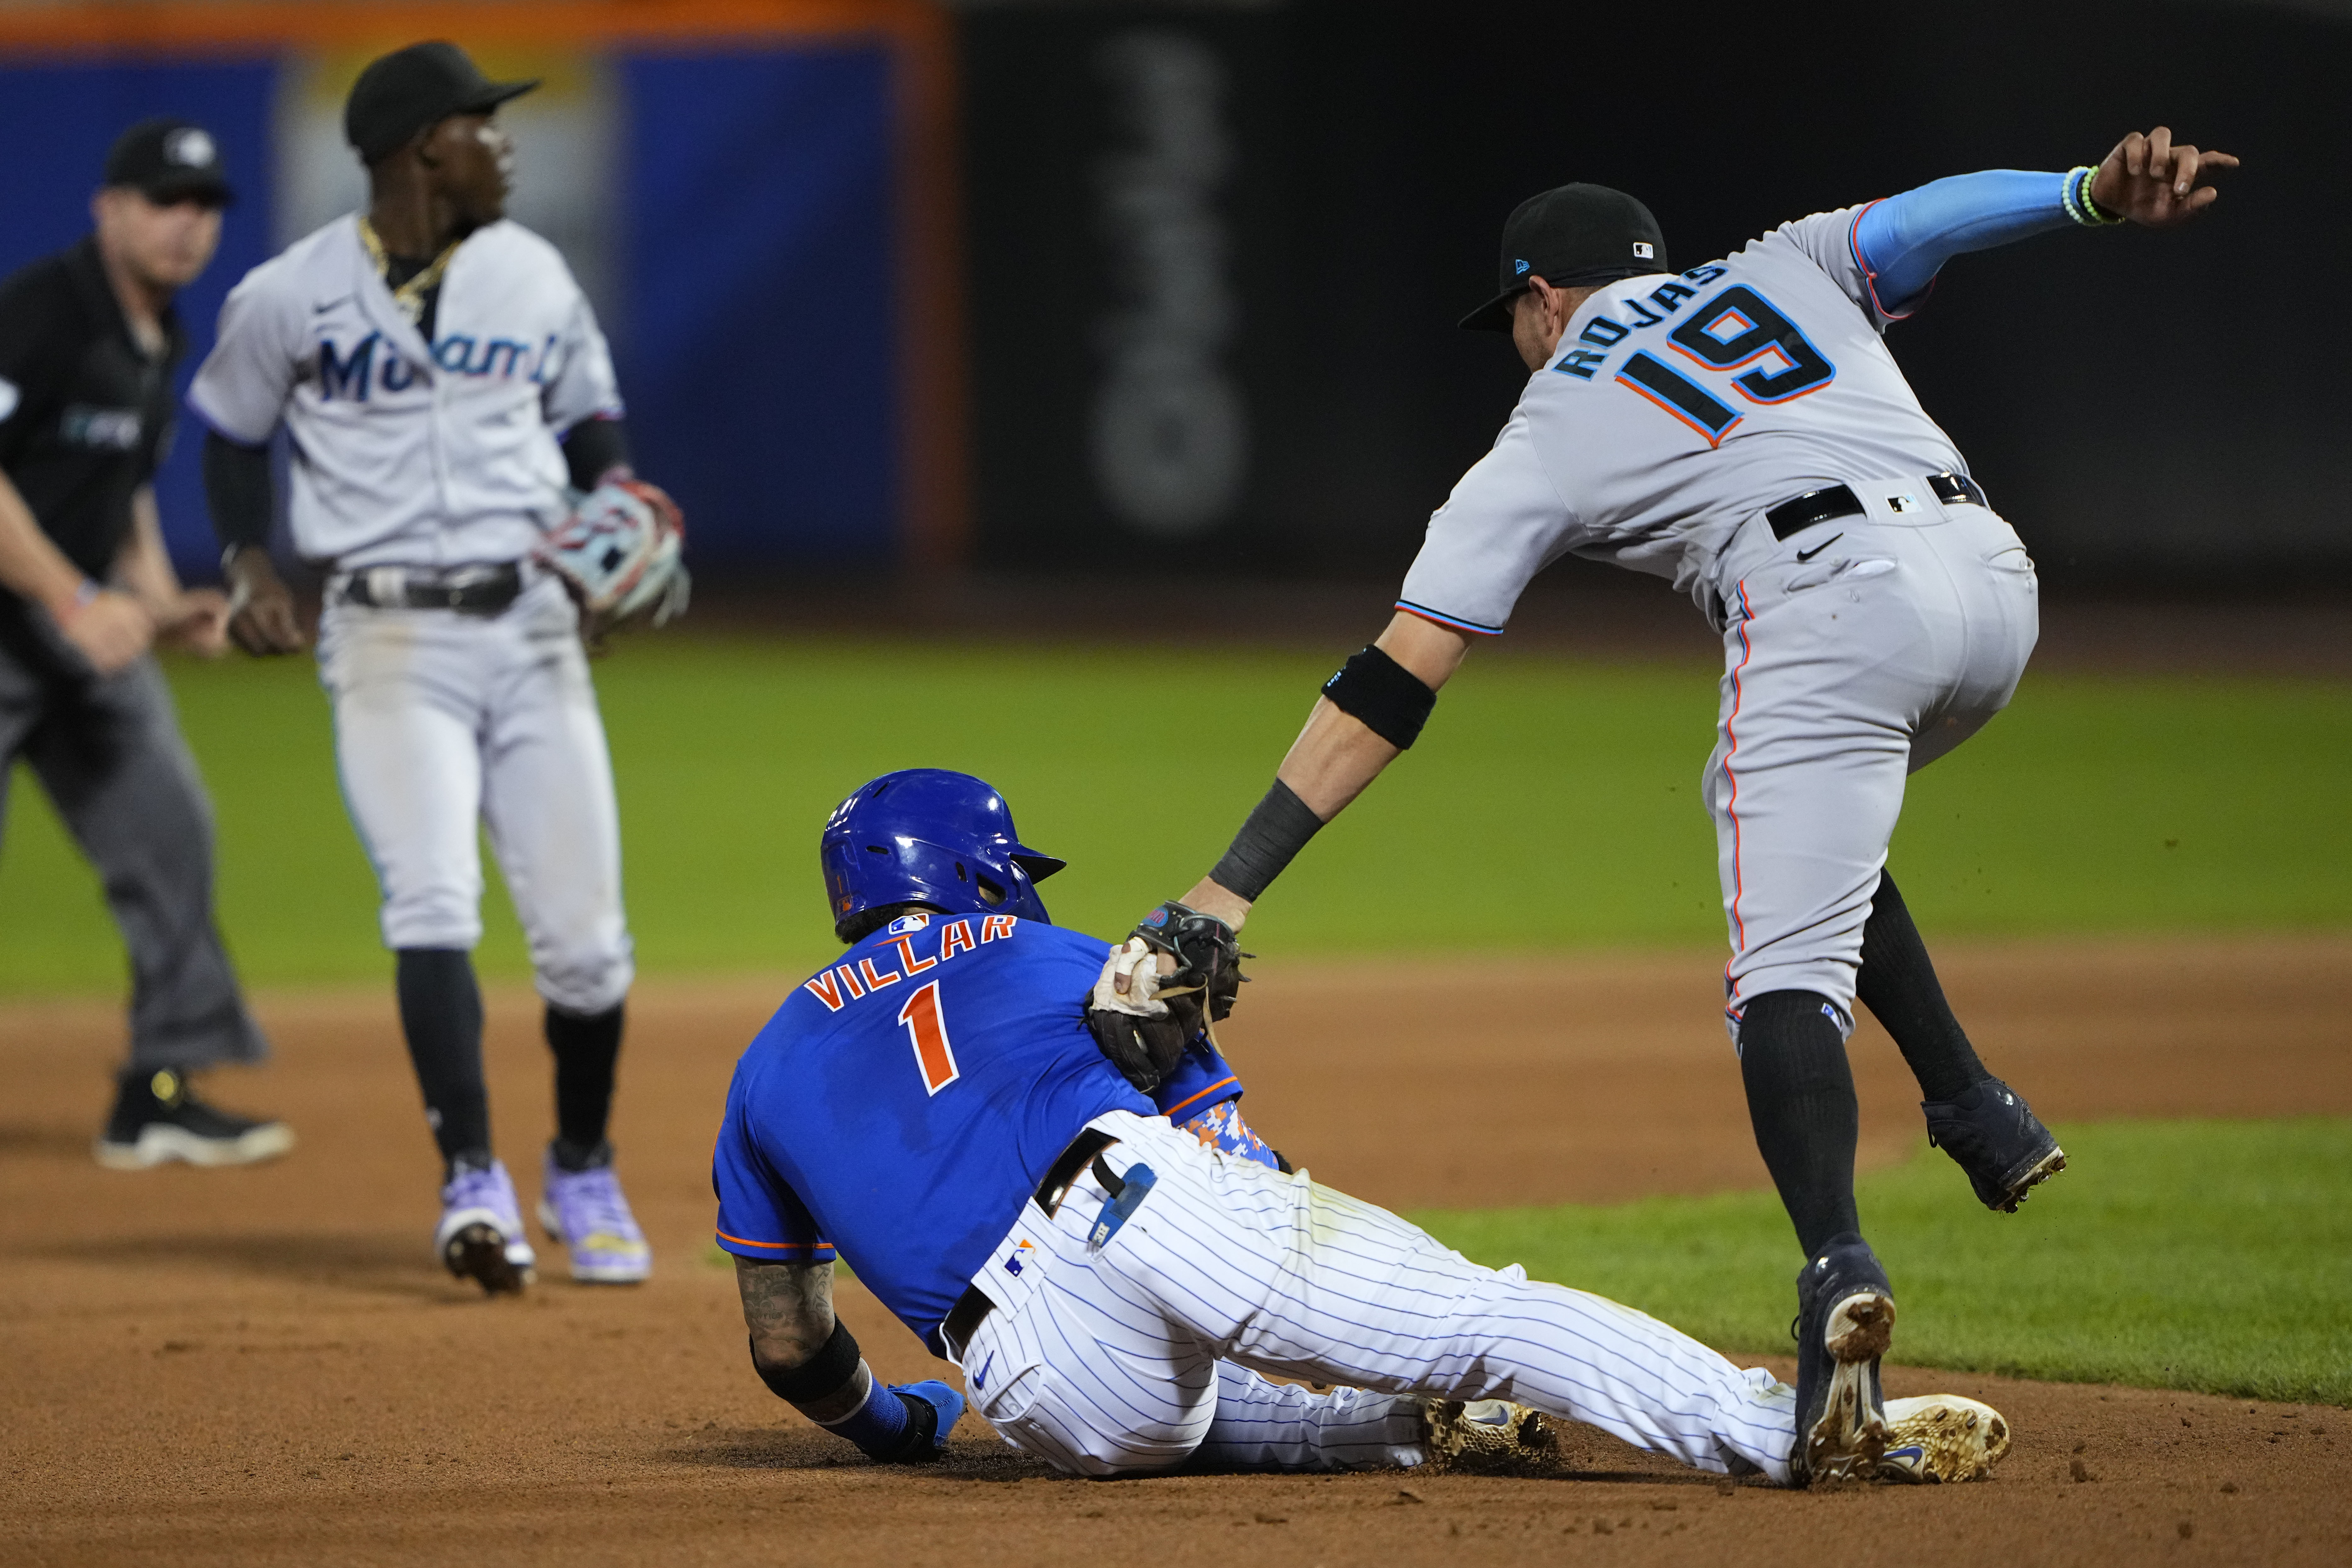 Miami Marlins shortstop Miguel Rojas (19) tags out New York Mets second baseman Jonathan Villar (1) on a fielders choice during the fourth inning at Citi Field.